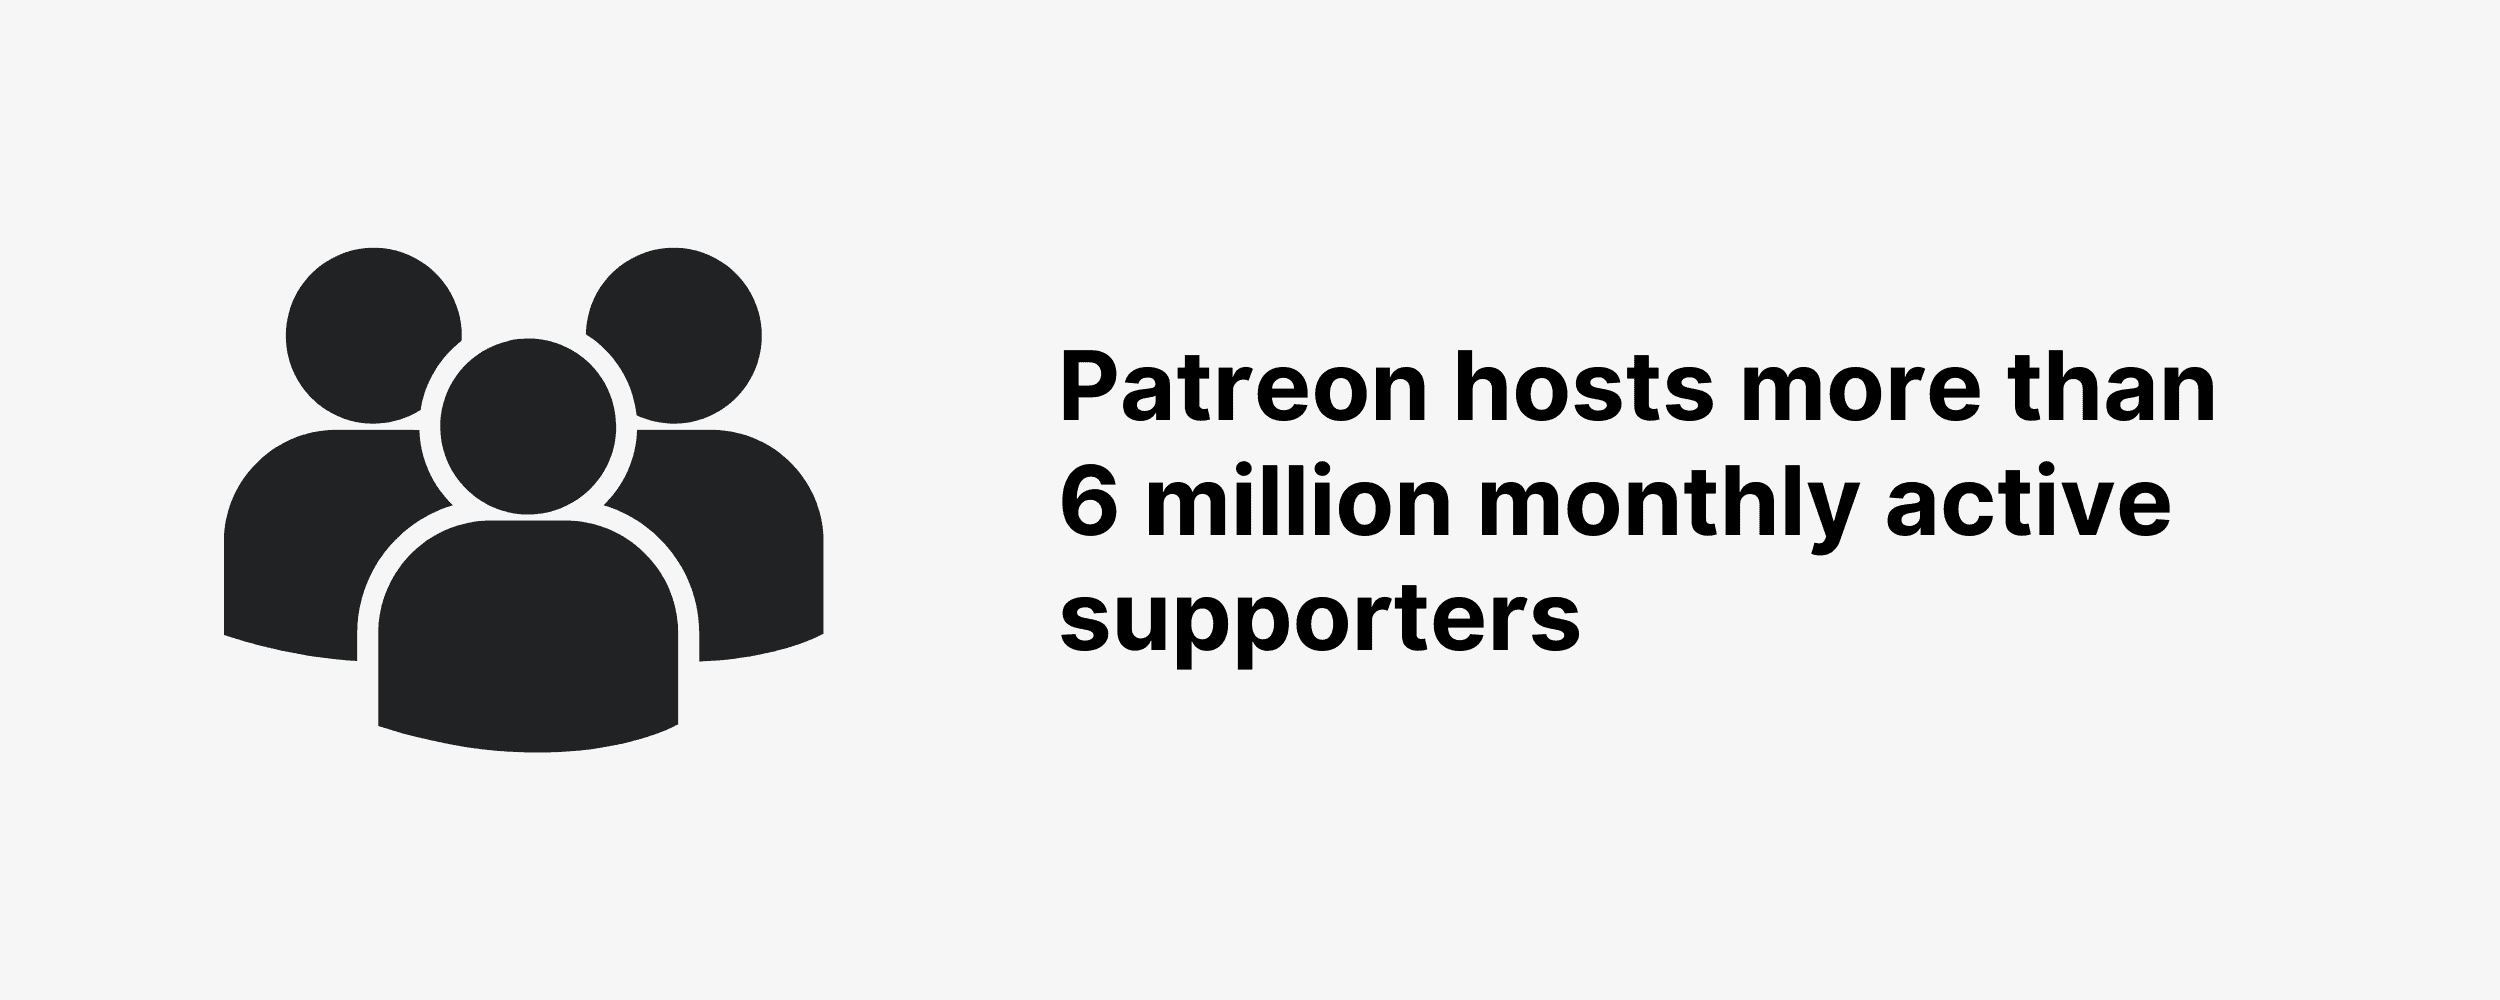 Patreon hosts more than 6 million monthly active supporters